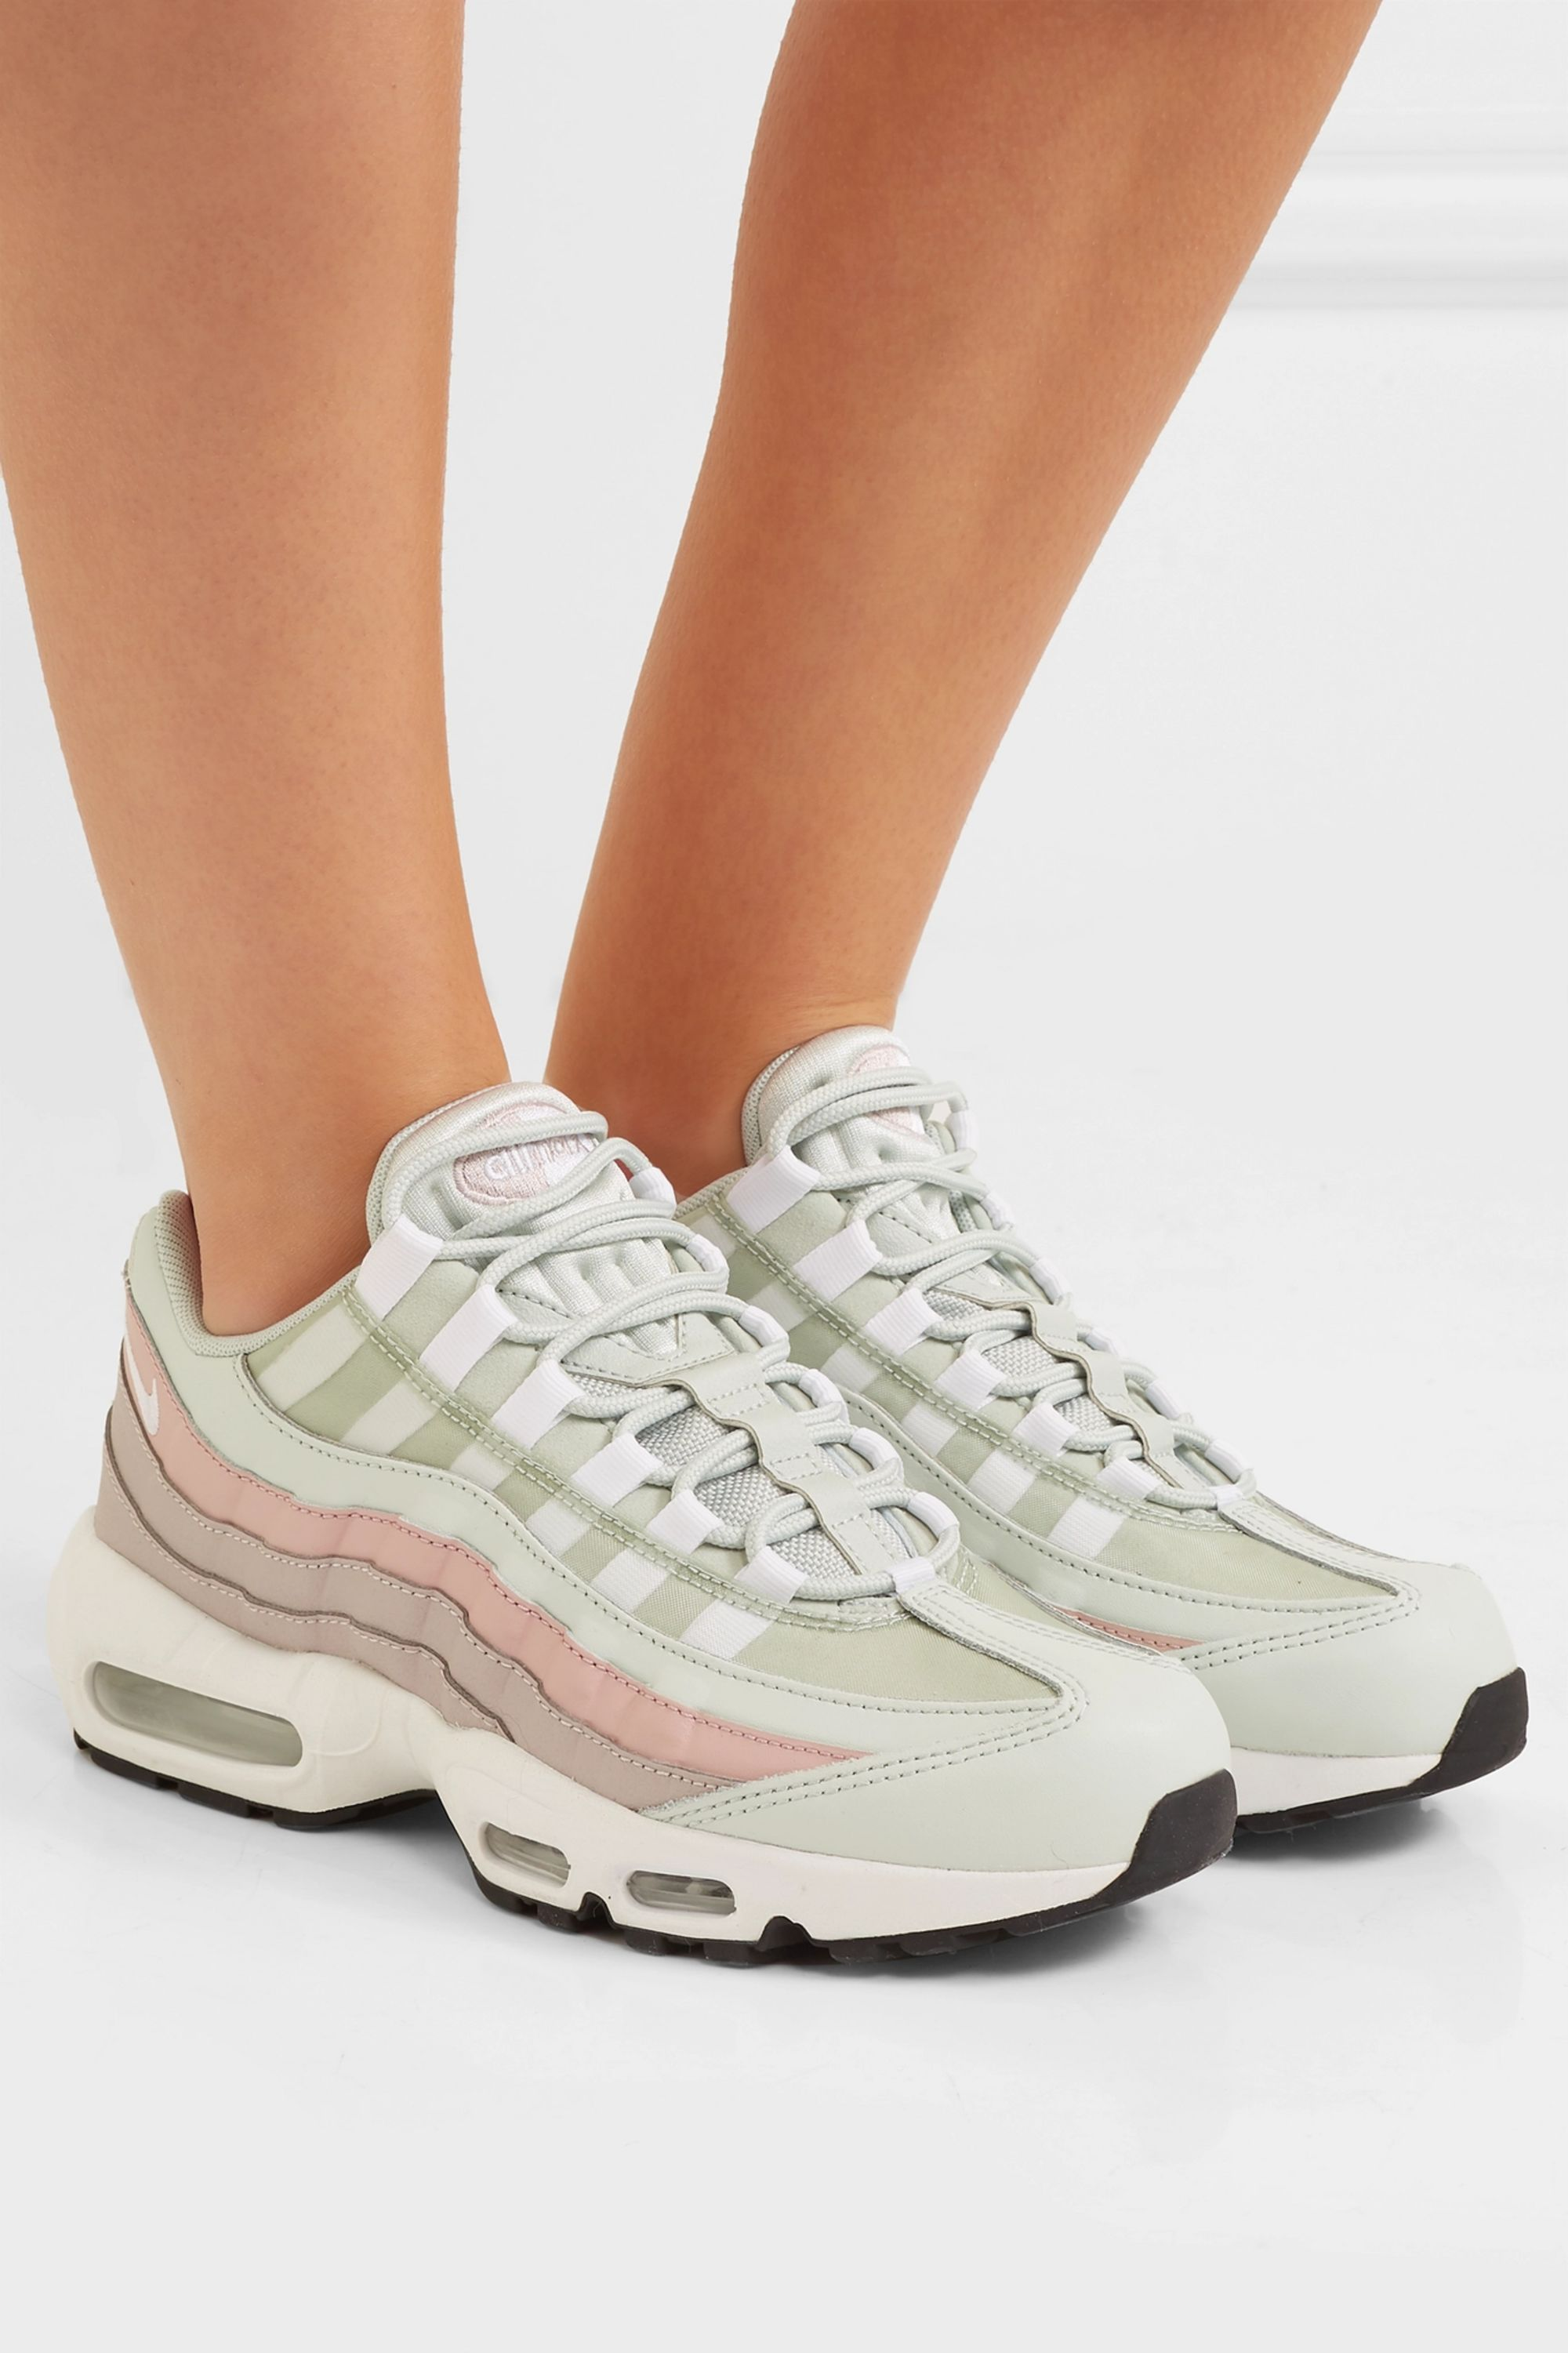 Air Max 95 suede, mesh and leather sneakers